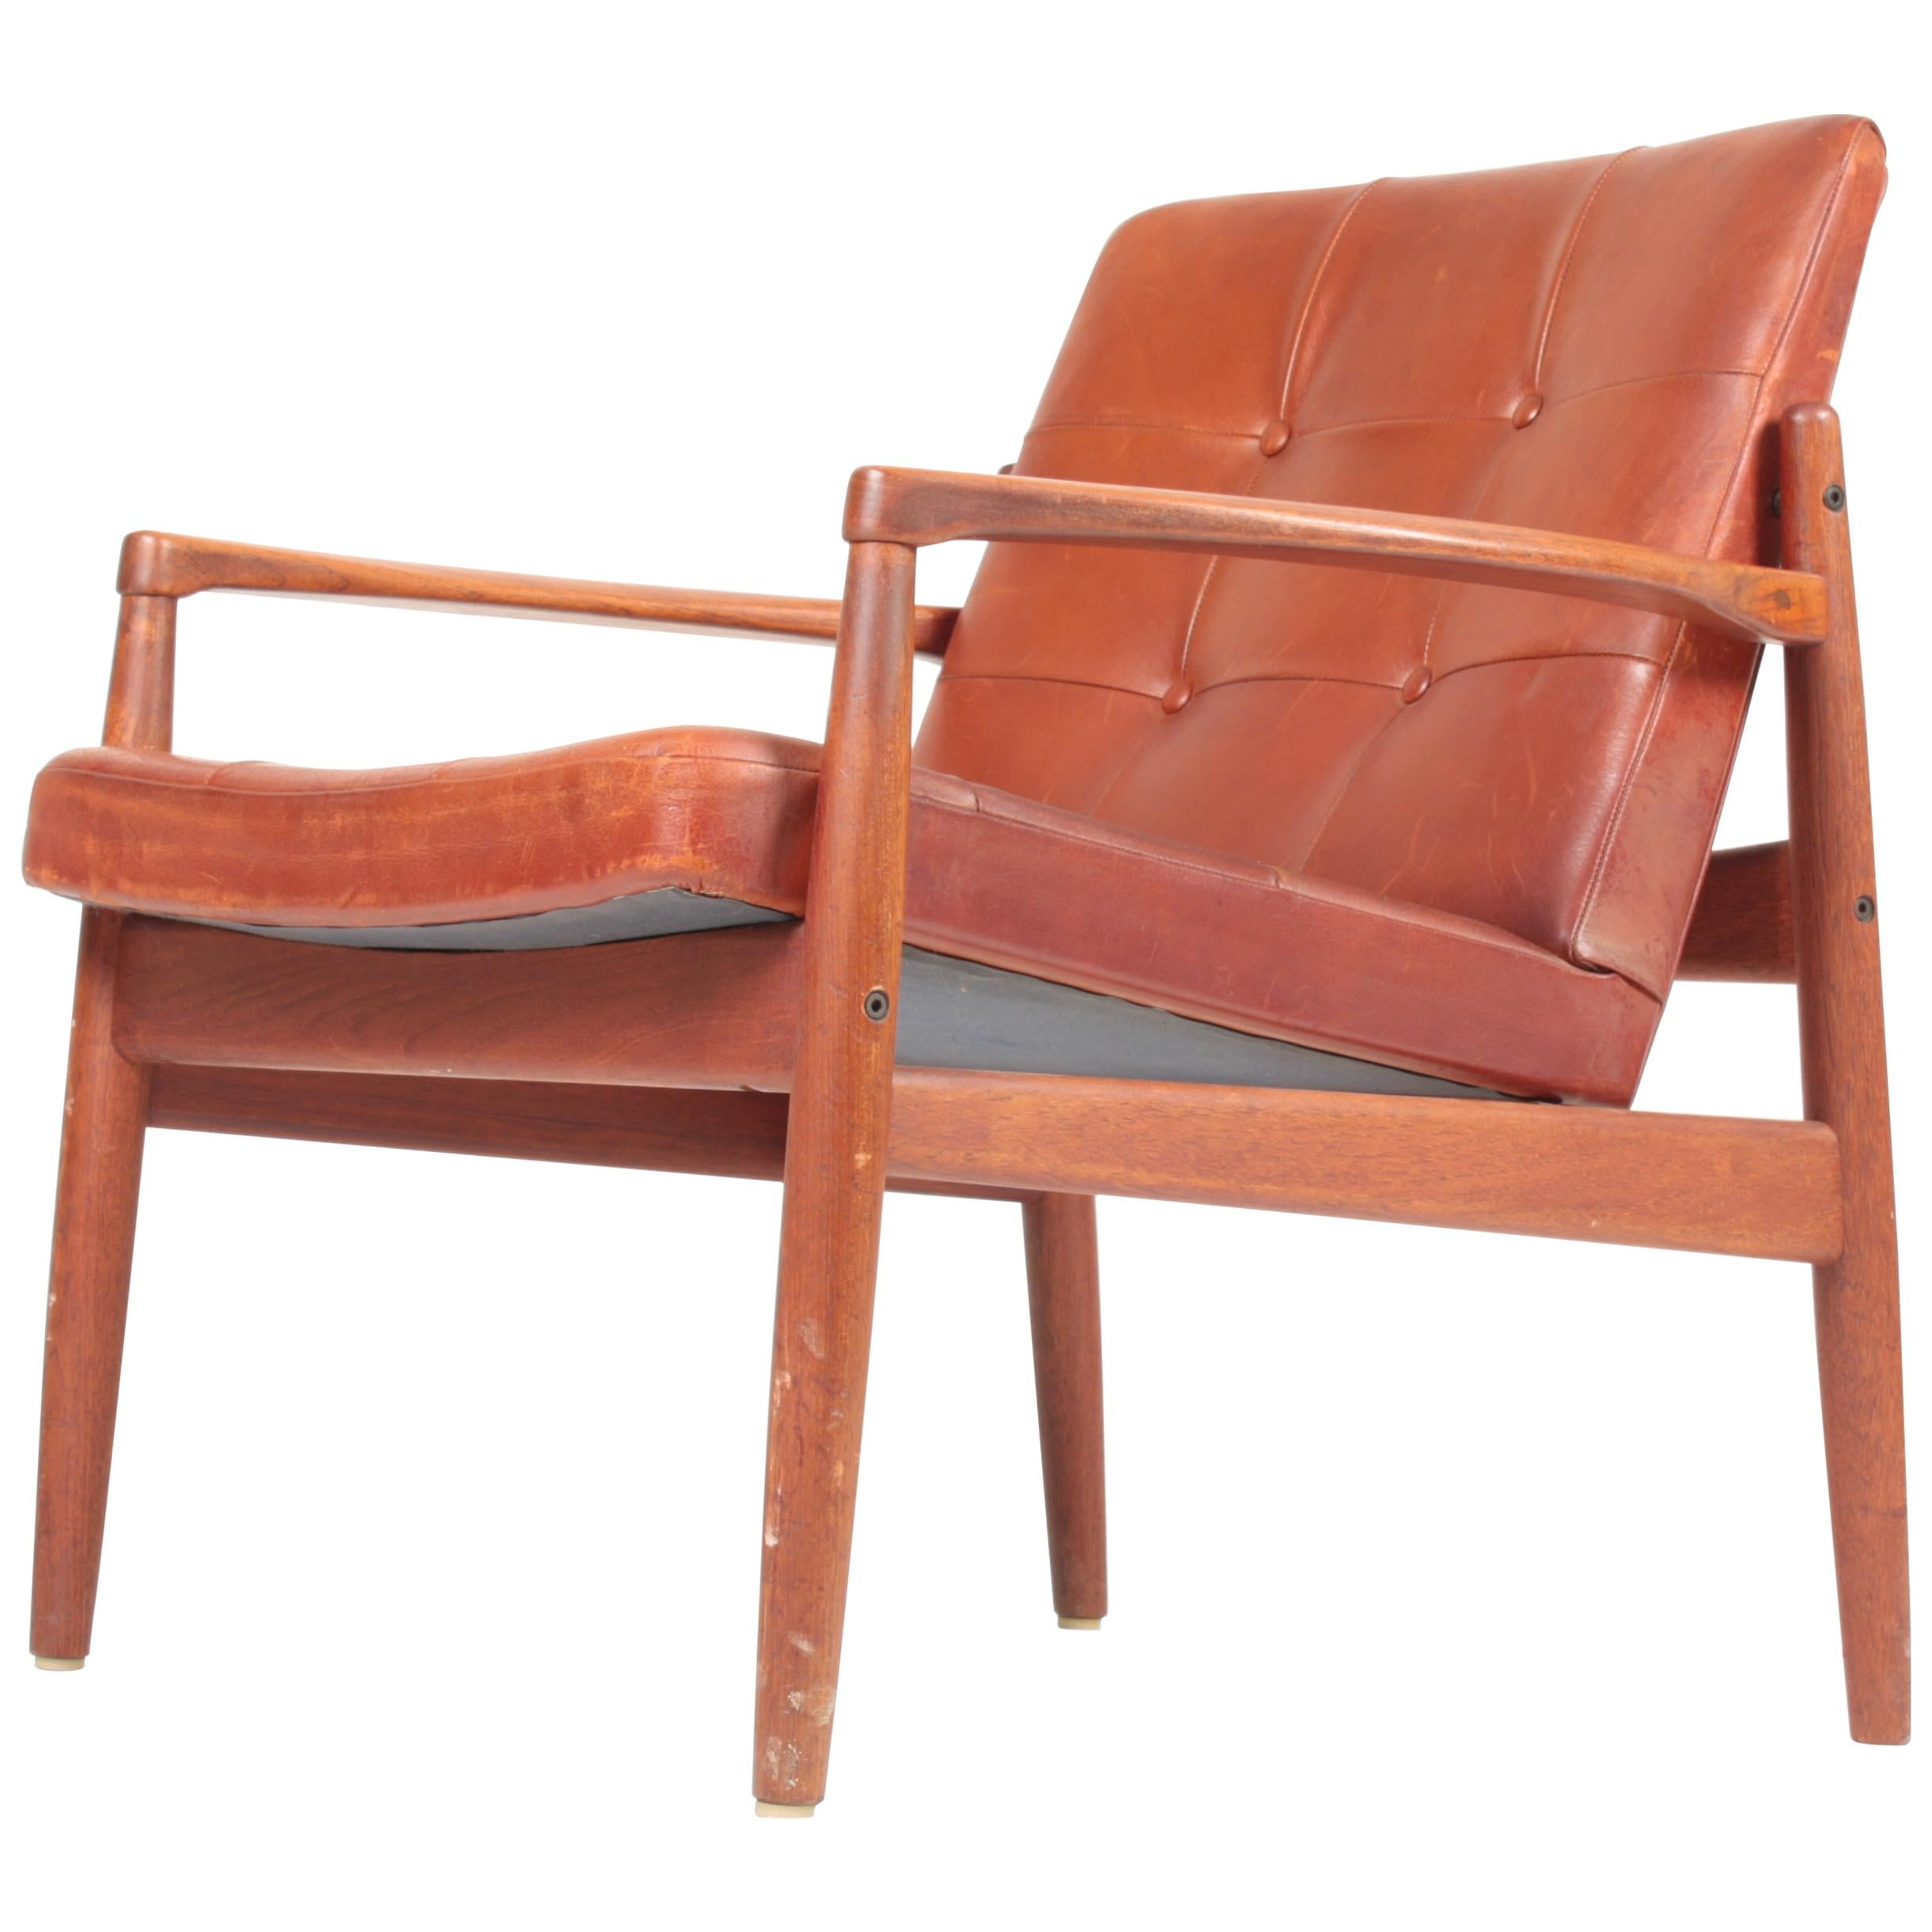 Lounge Chair in Teak and Patinated Leather by Tove & Edvard Kindt-Larsen, 1960s